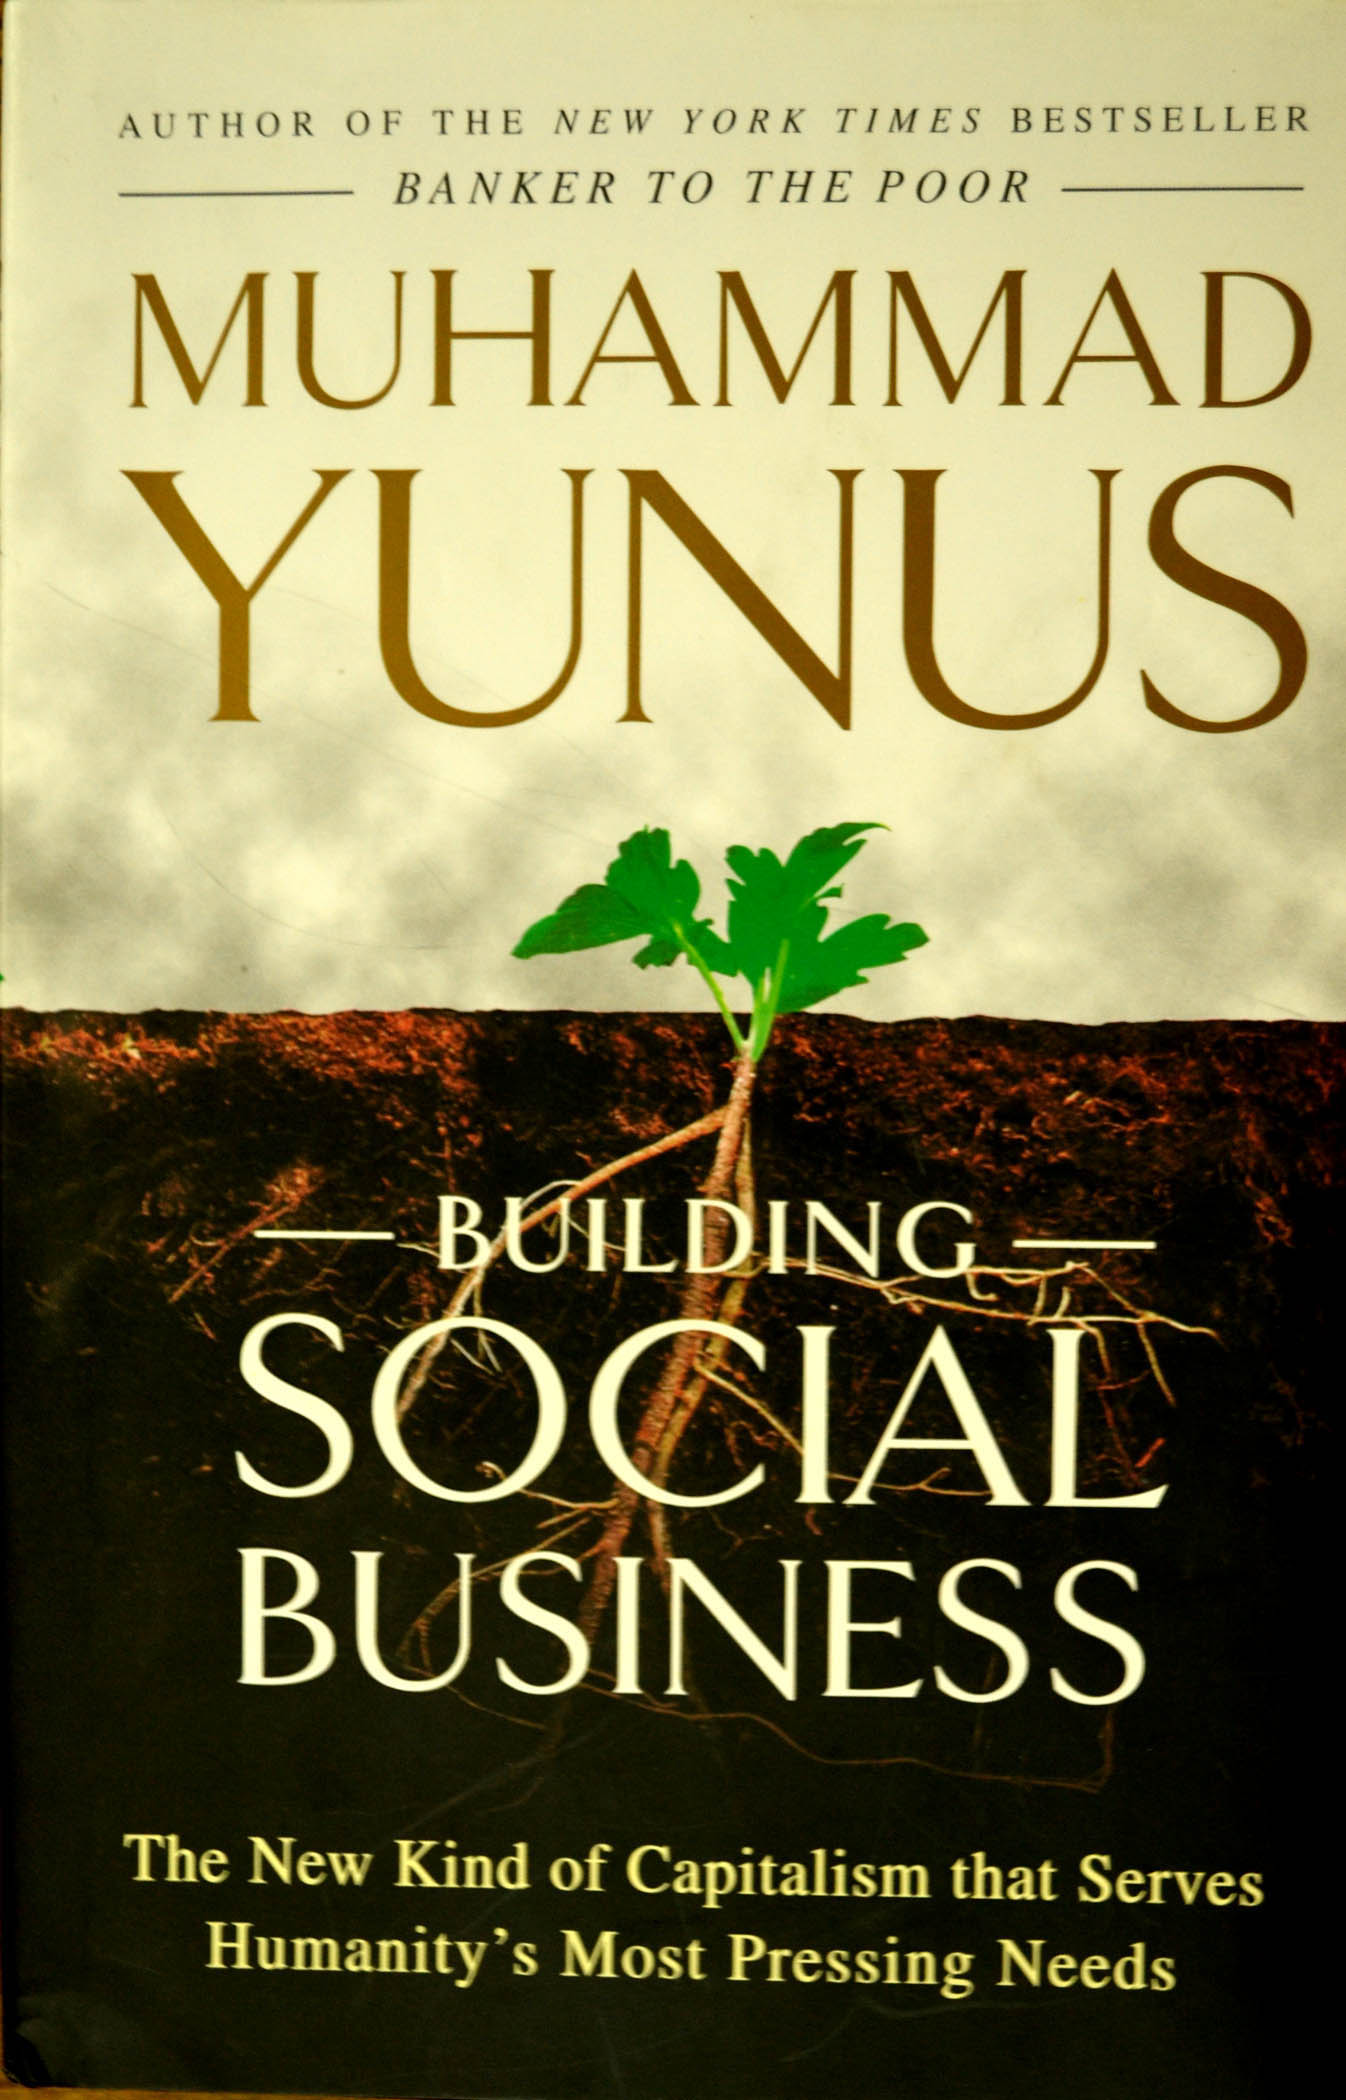 building social business Buy building social business: the new kind of capitalism that serves humanity's most pressing needs reprint by muhammad yunus (isbn: 9781586489564) from amazon's book store everyday low prices and free delivery on eligible orders.